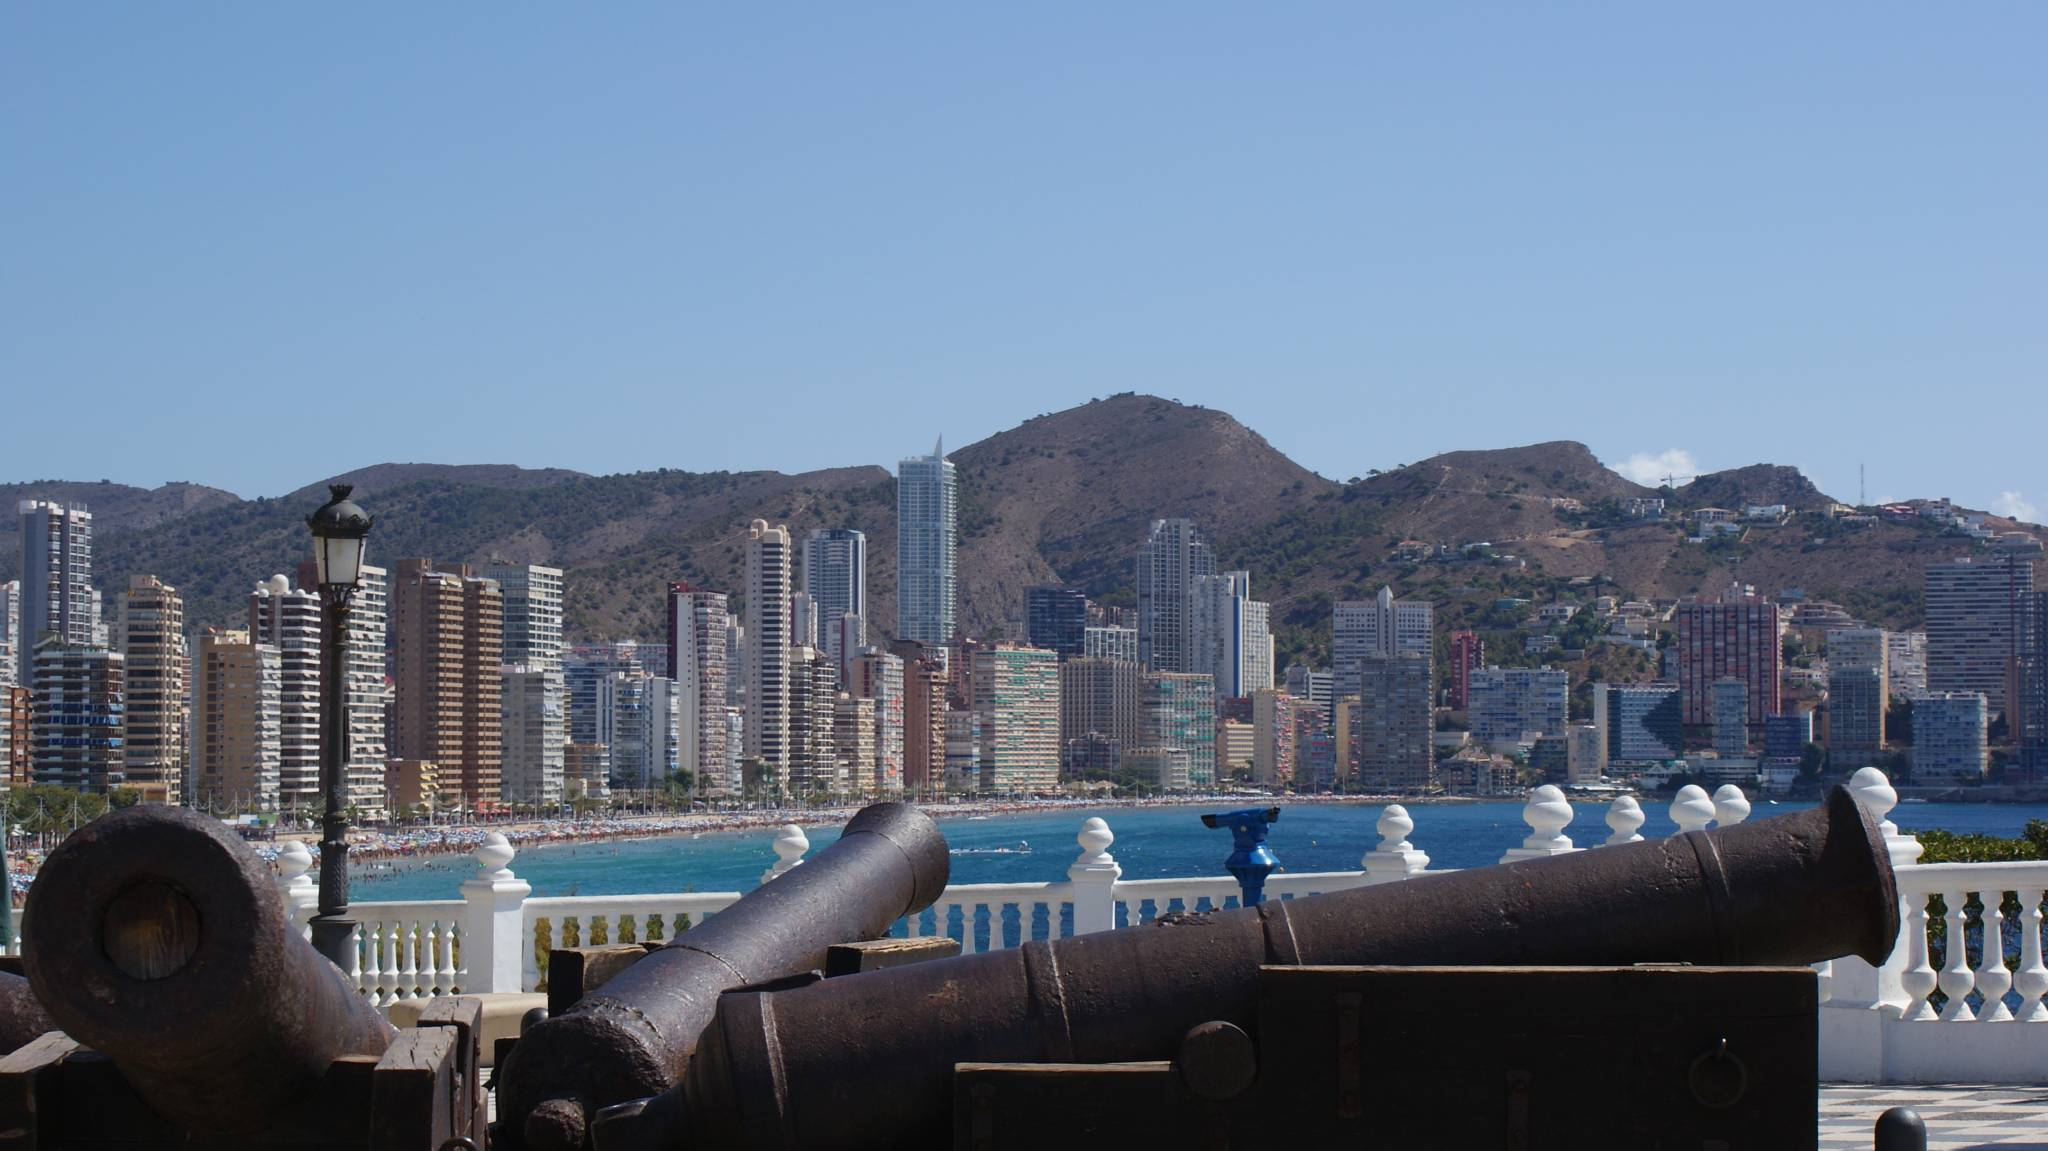 Cannons in Benidorm's Church Square and skyscrapers in the background